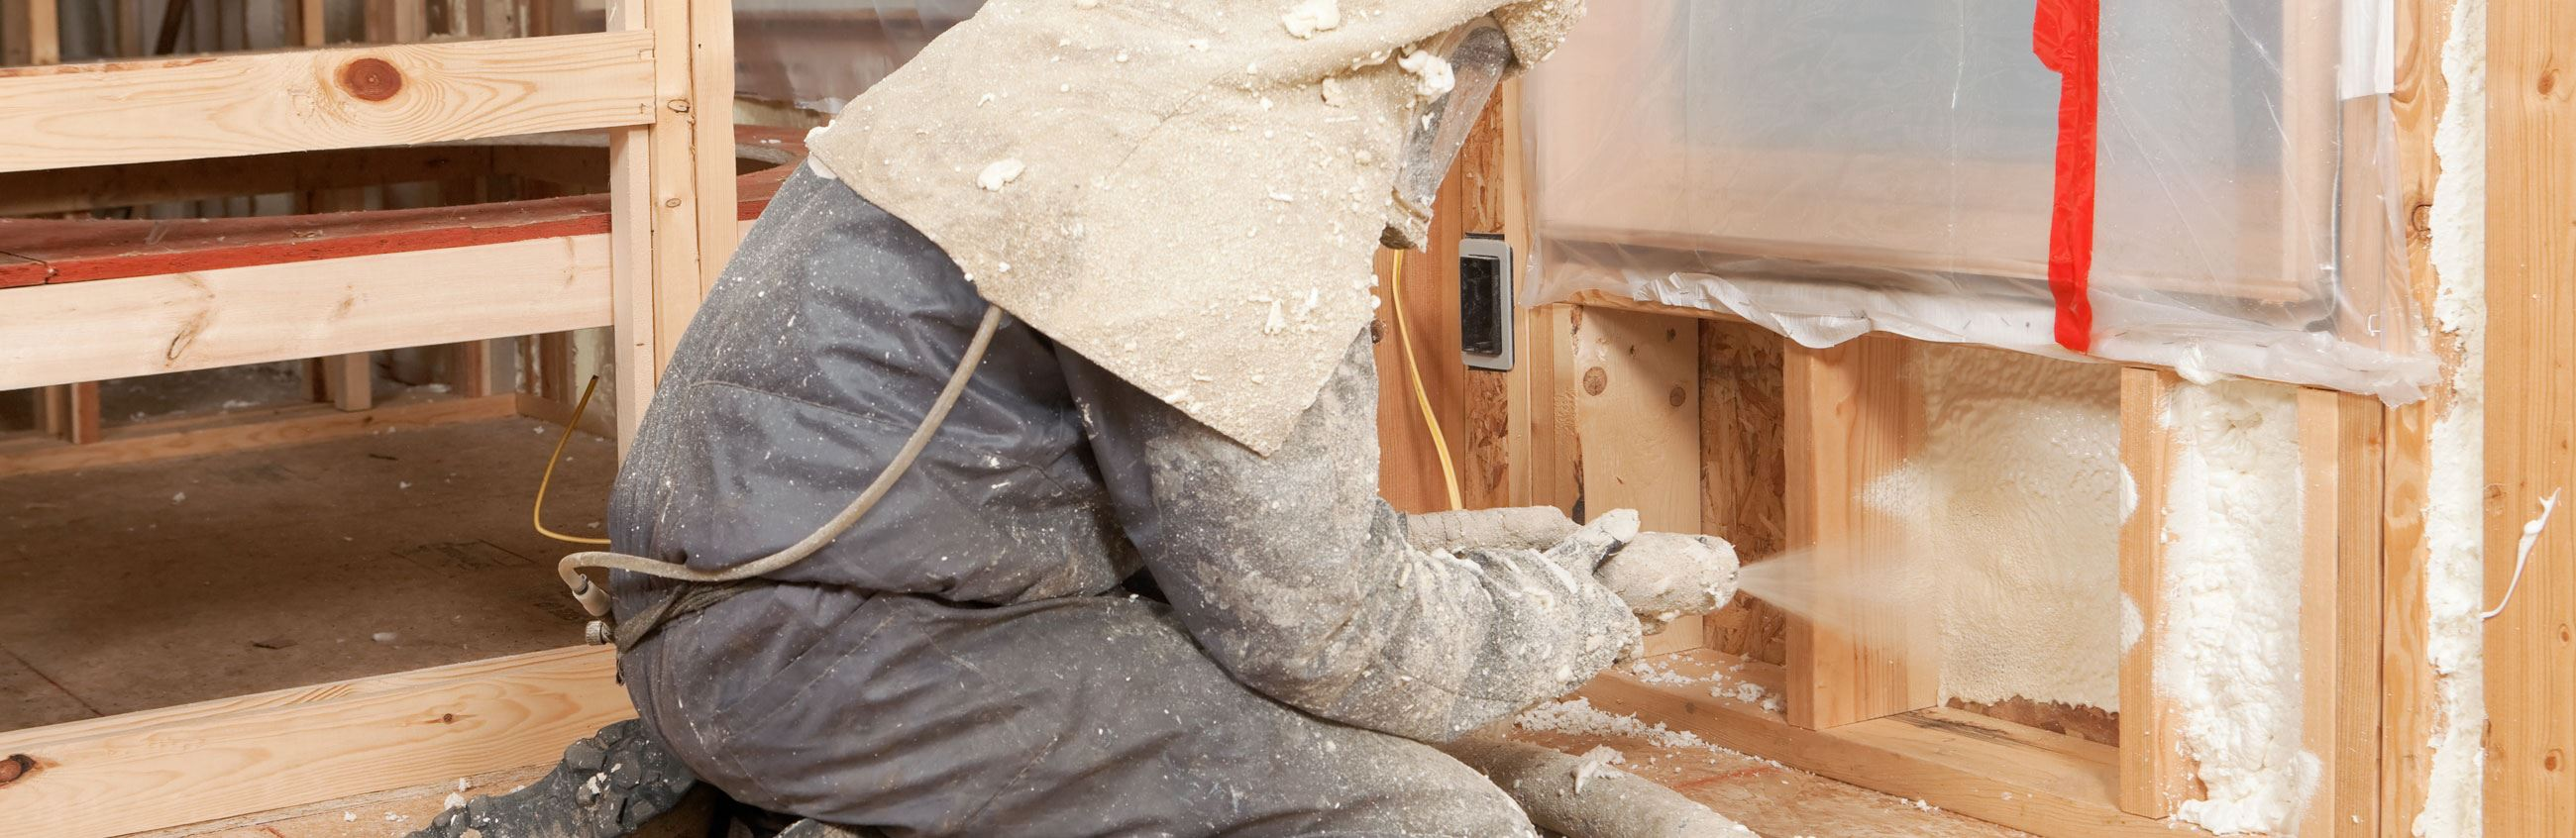 Man in respirator suit spraying insulation